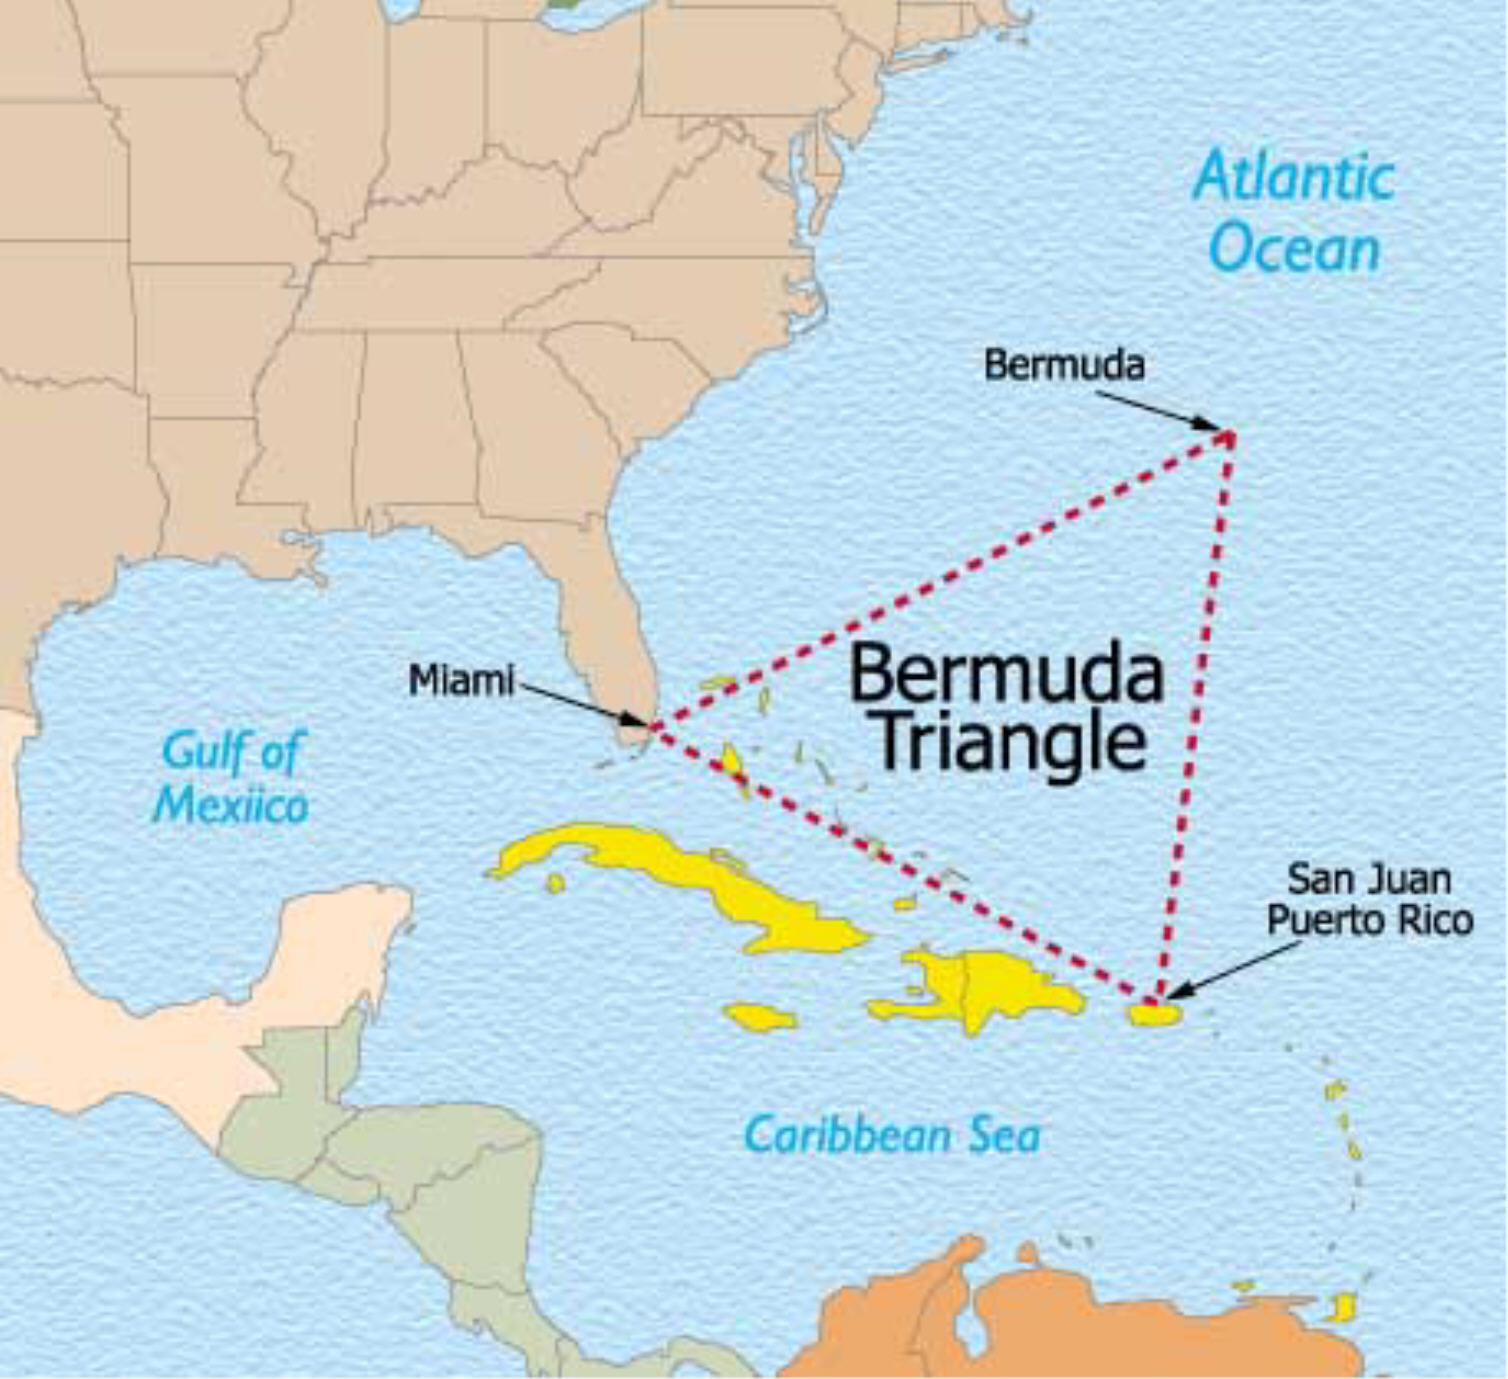 the characteristics of the bermuda triangle a mysterious place in the atlantic ocean Abc news features  as the search for mh370 remains active in the indian sea,  this weekend's  the area known as the bermuda triangle between the years of  1945 and 1970,  the mystery was exacerbated by the fact that no distress  signals were  us sanctions have a weak spot: tiny allies like latvia.